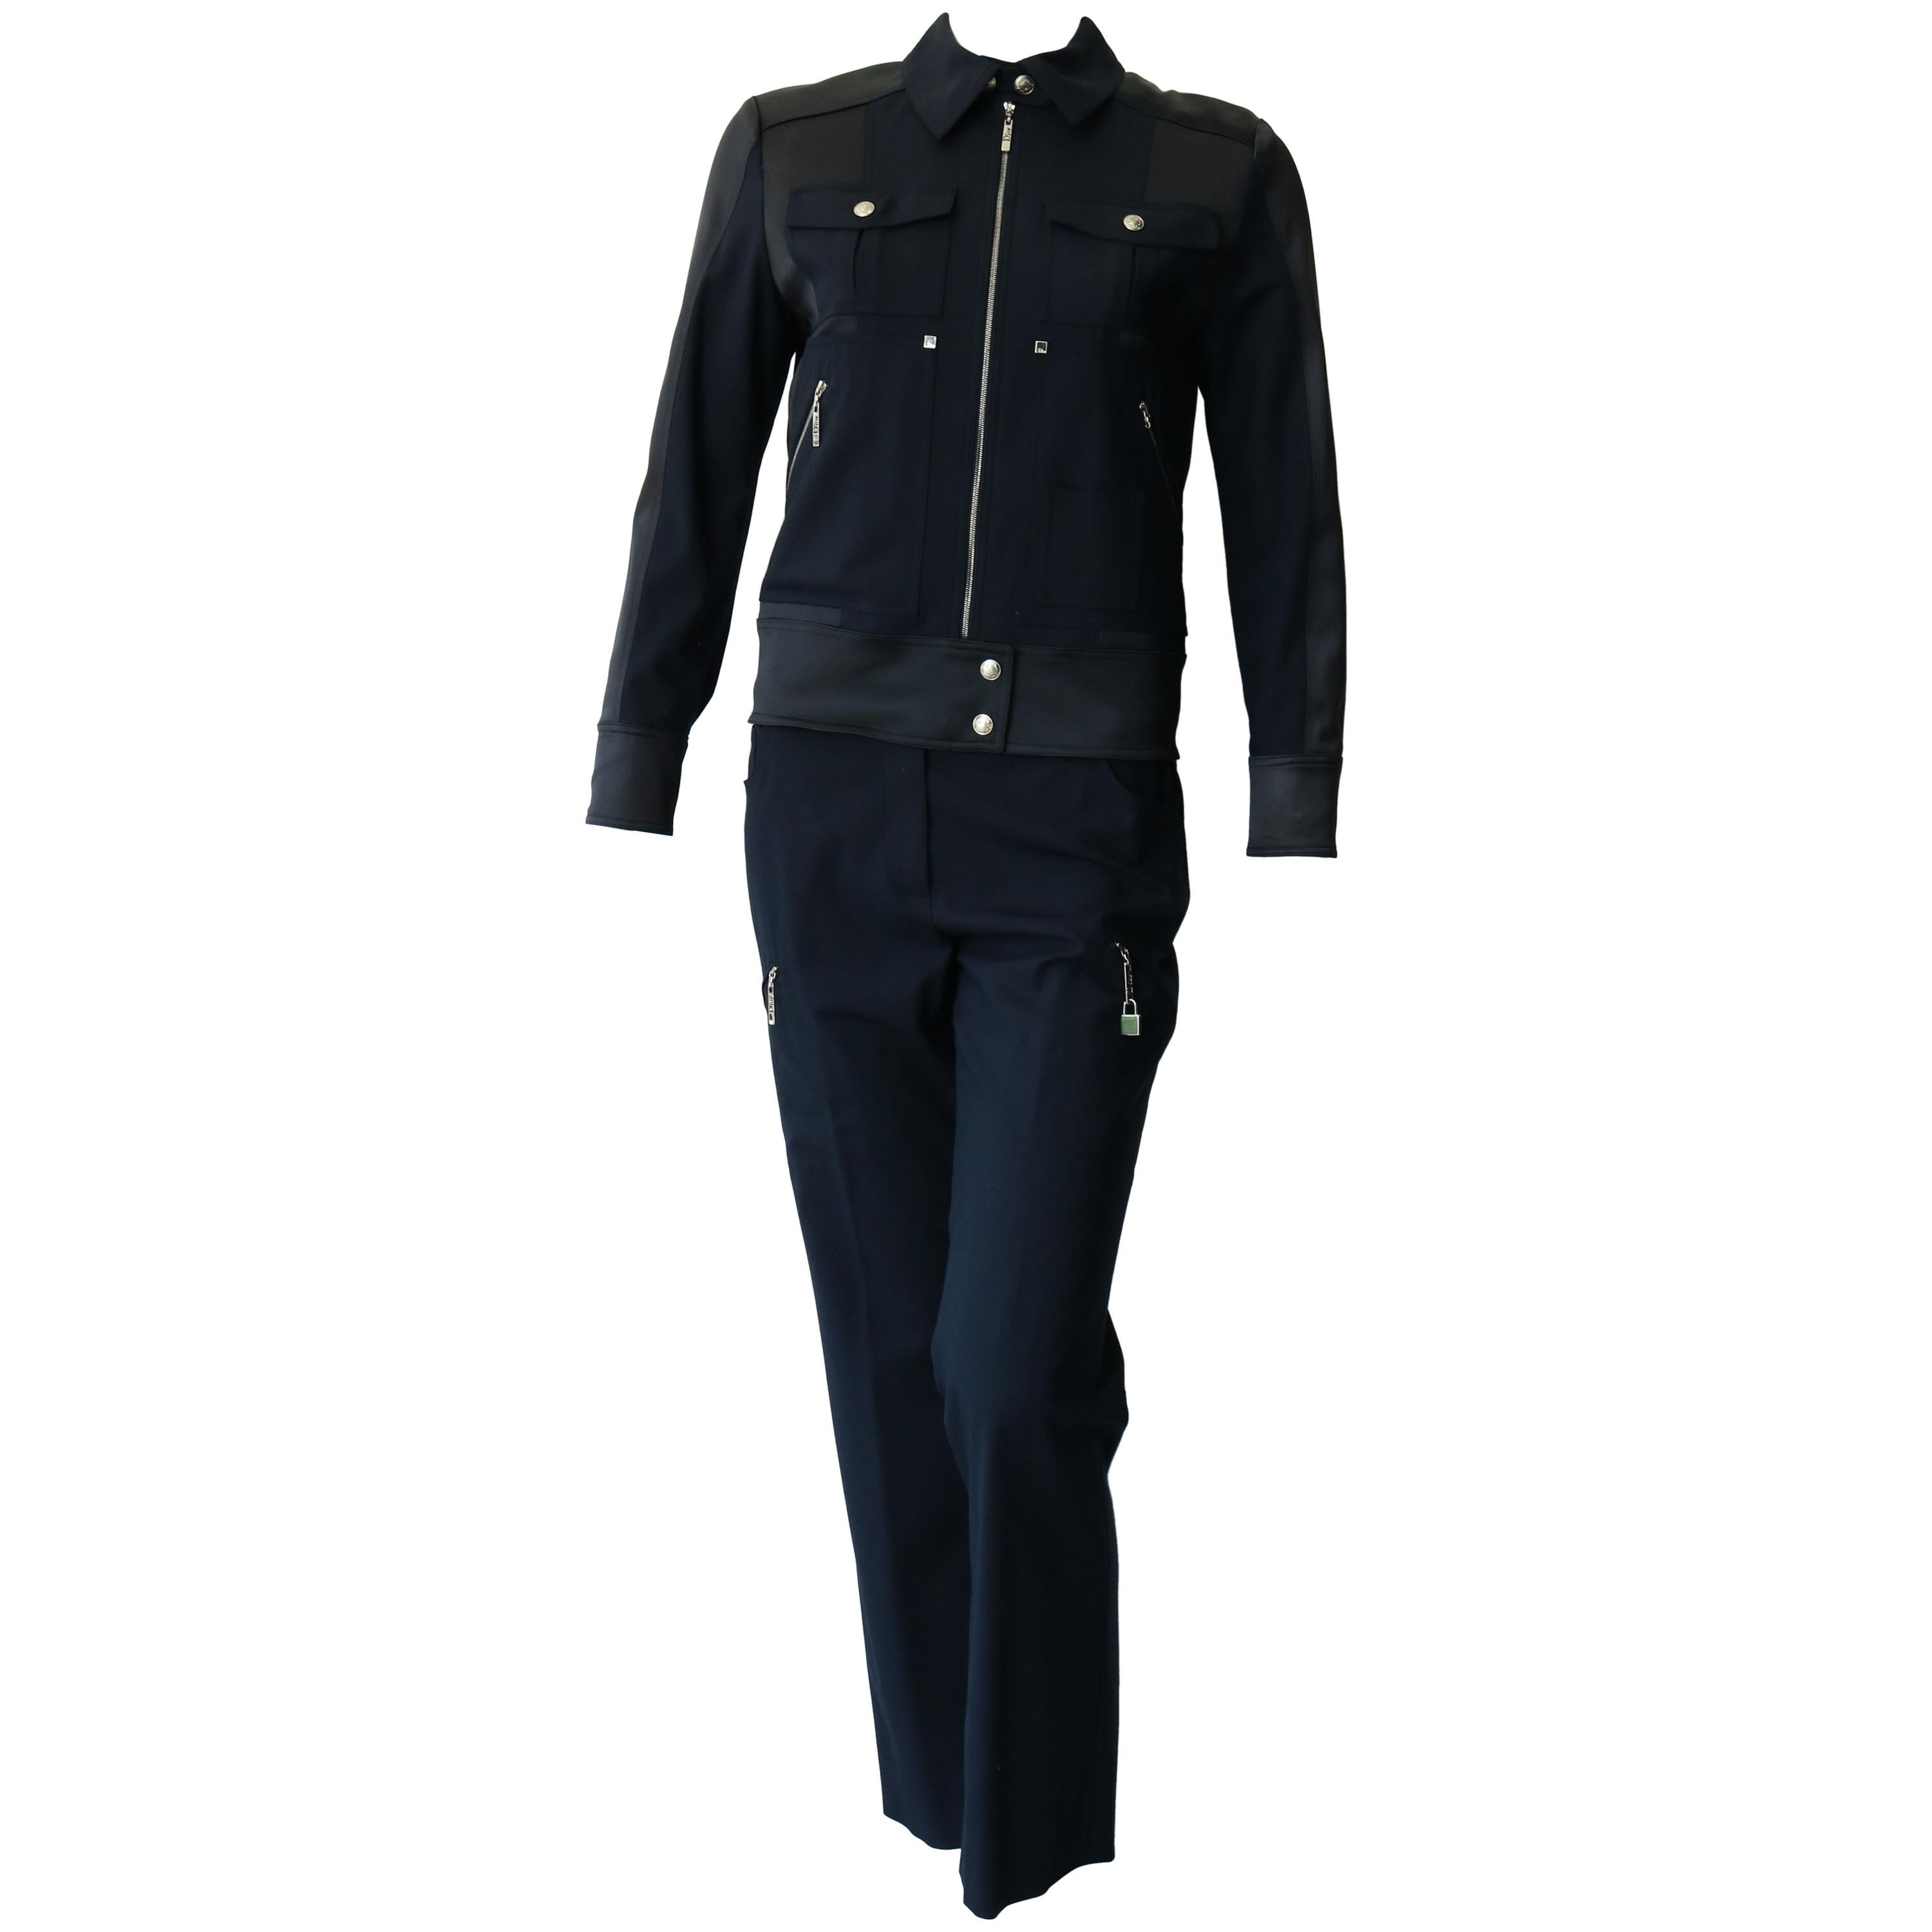 Christian Dior Navy Blue Jacket and Trouser Ensemble Size US 6